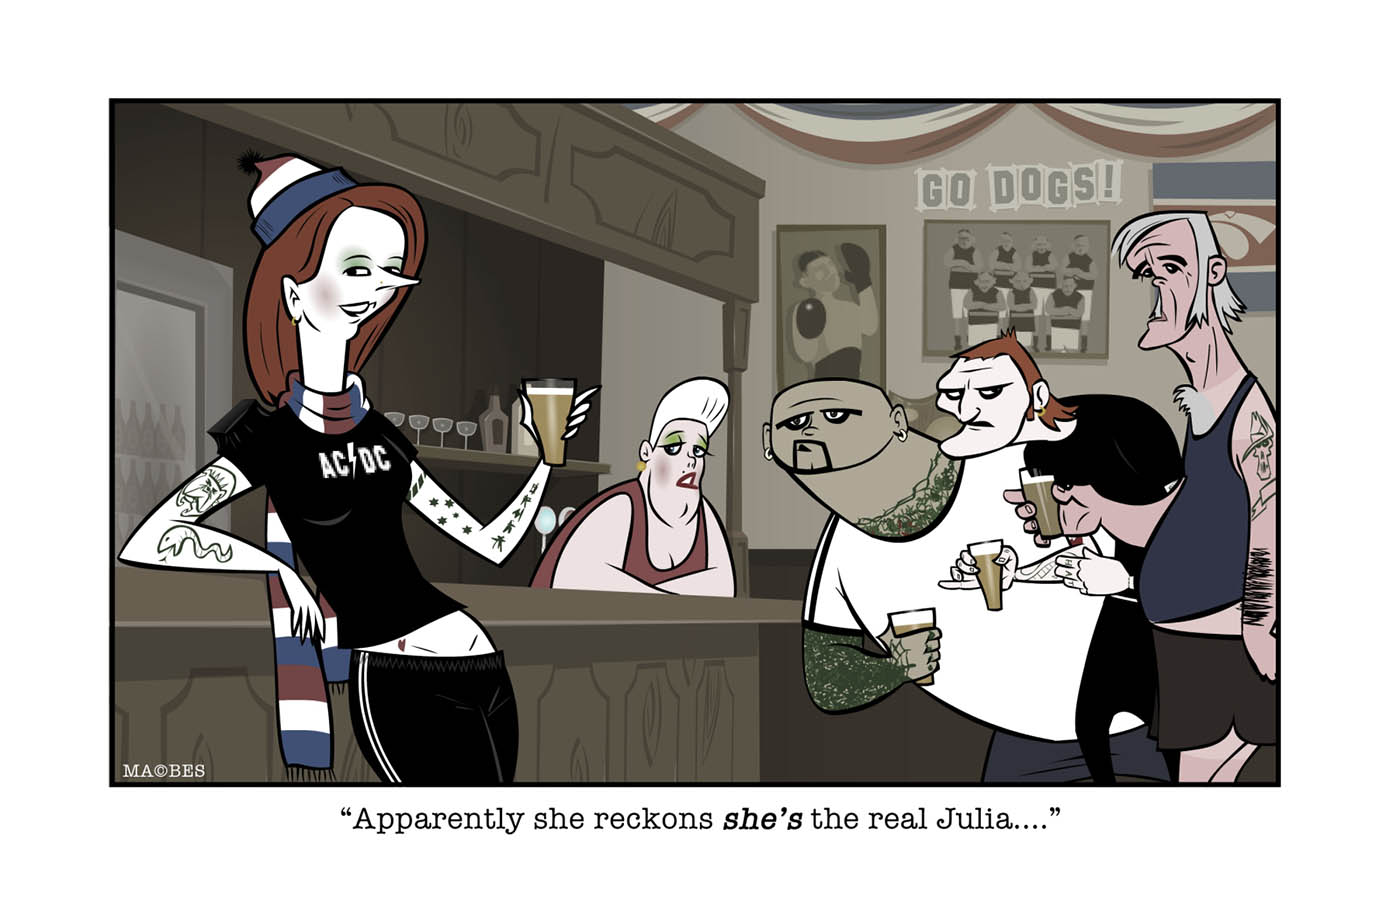 A colour cartoon depicting Julia Gillard leaning against the bar of a hotel. She wears a black 'AC/DC' T-shirt, black track pants, a red, white and blue scarf and beanie. She has tattoos on her arms and holds a glass of beer in one hand. Part of her midriff is exposed. Nearby stand three men, each holding a beer and wearing very casual clothing (shorts, T-shirts, singlets etc). They all look at her, as does the barmaid in the background. Under the cartoon is written 'Apparently she reckons she's the real Julia ...'       - click to view larger image